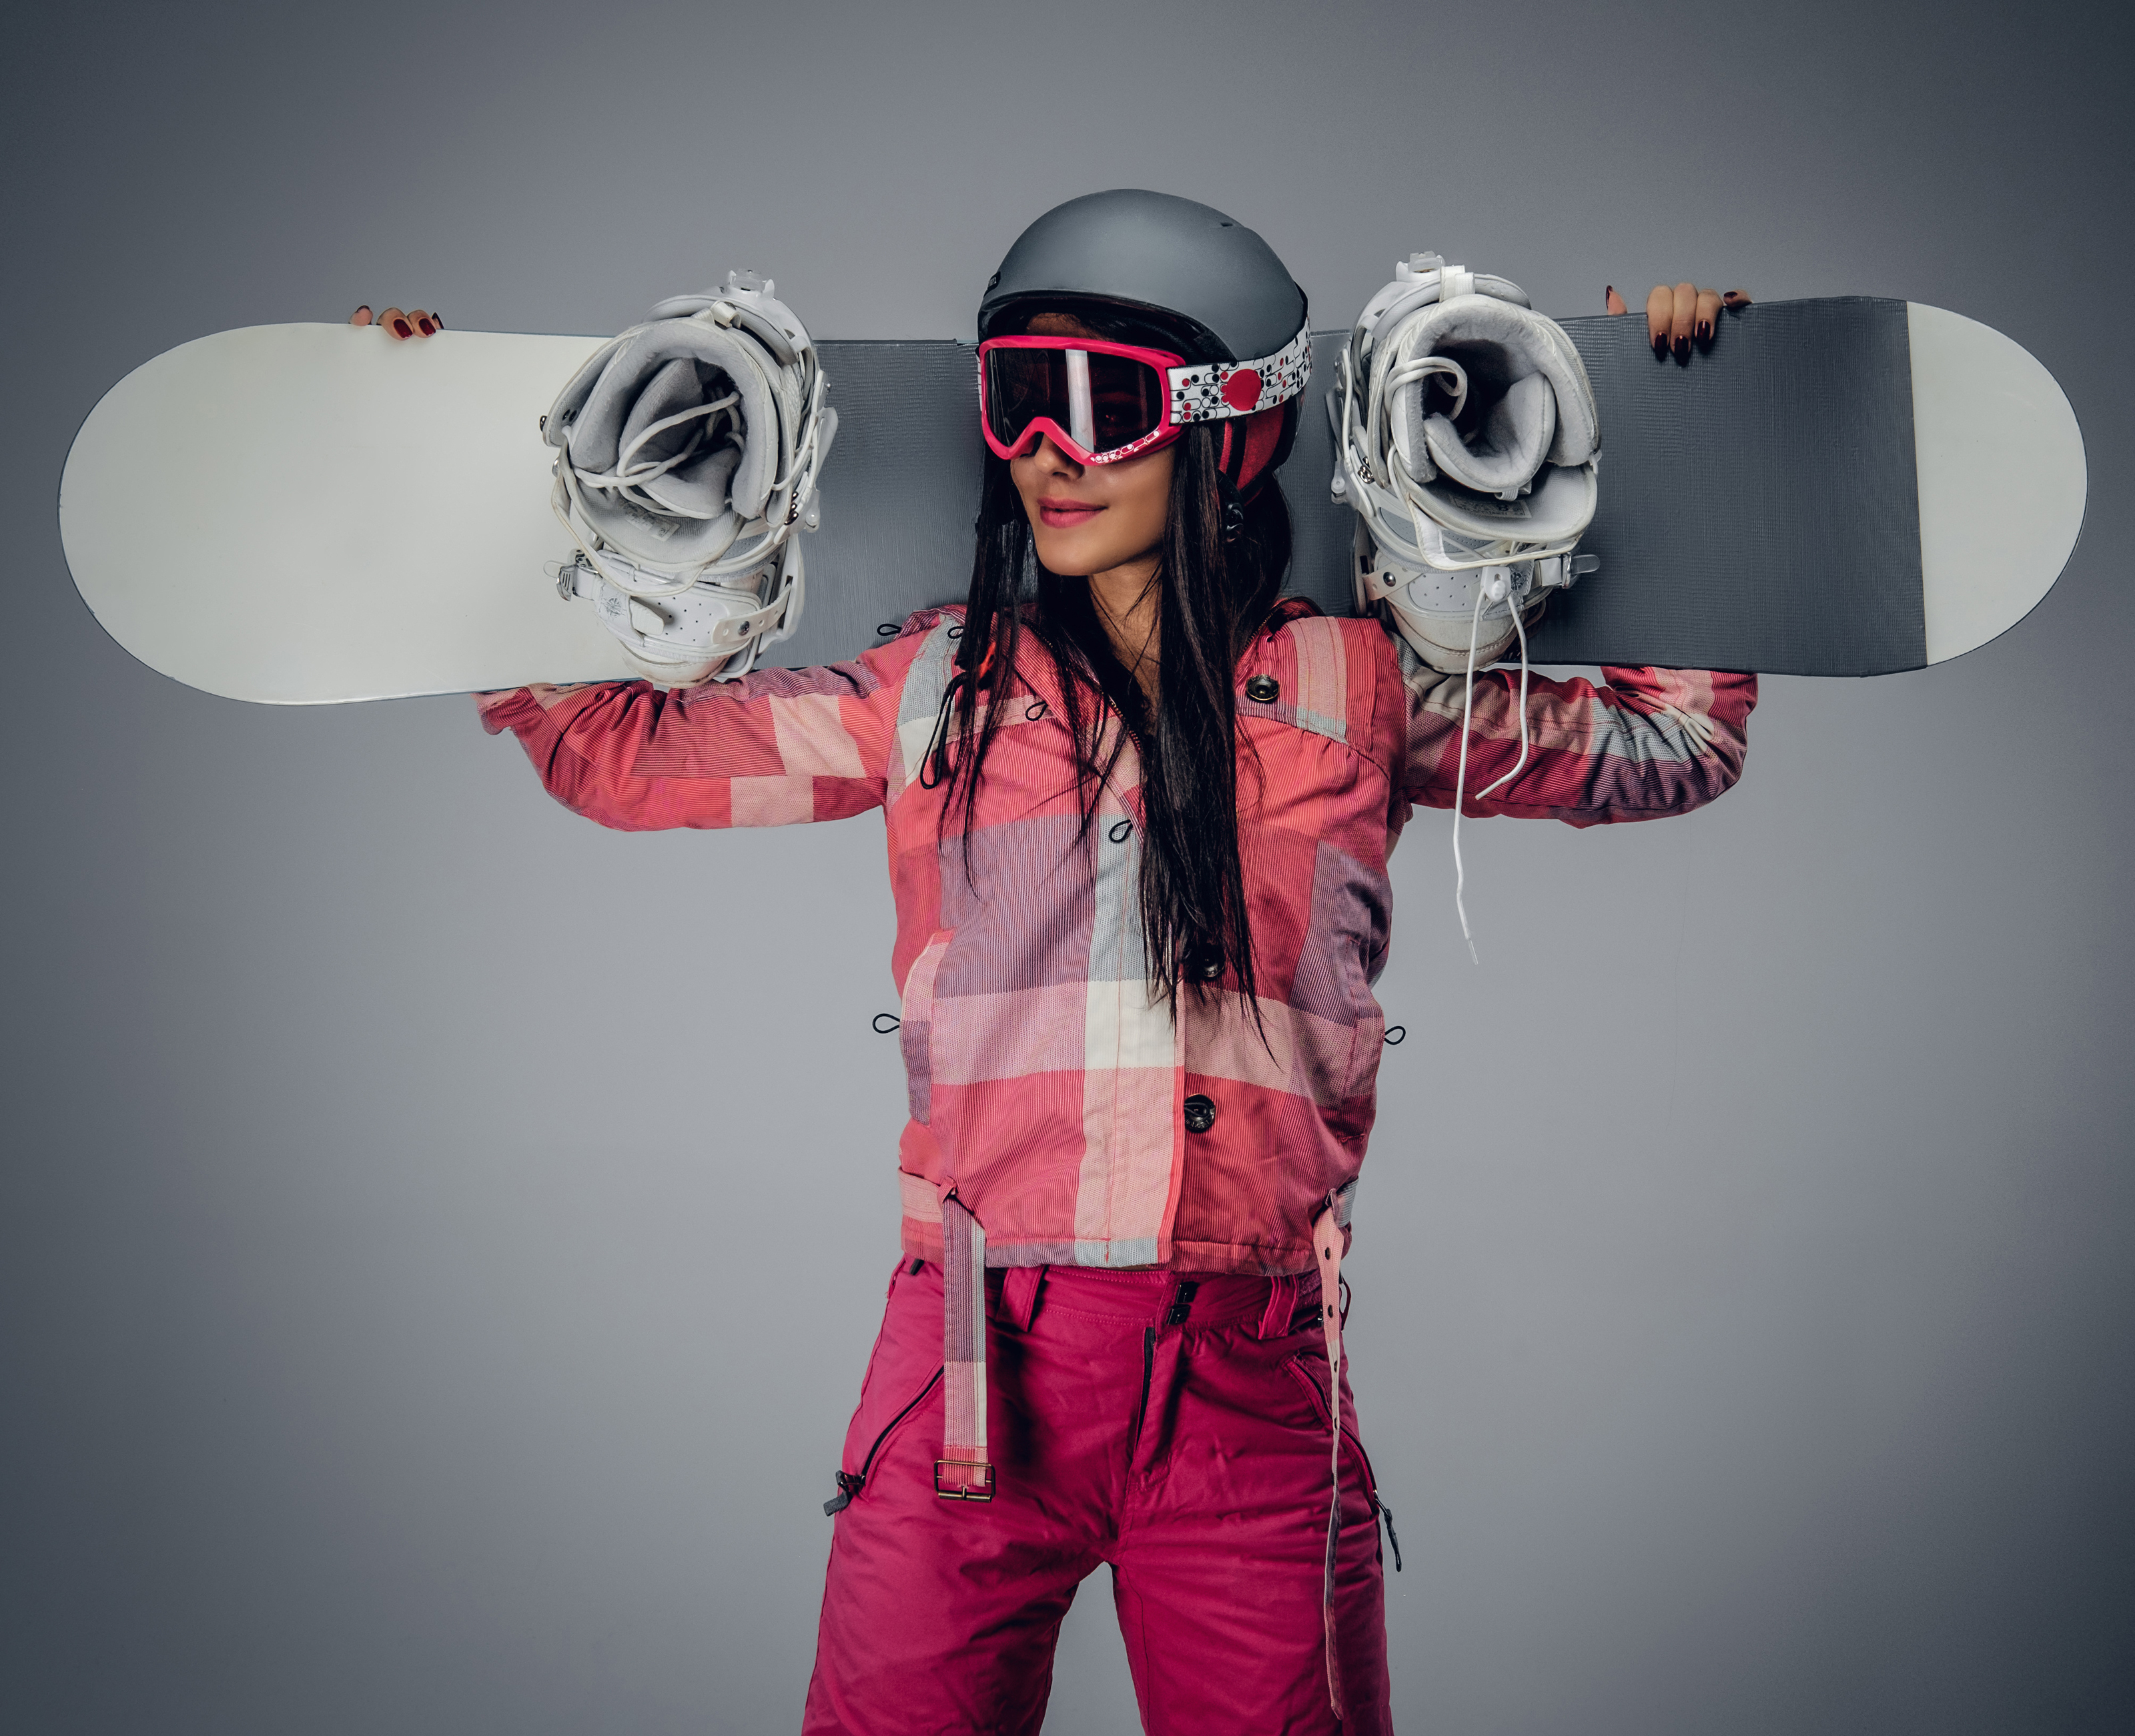 Wallpaper Brown haired Helmet Sport female Snowboarding Glasses Gray background Girls sports athletic young woman eyeglasses